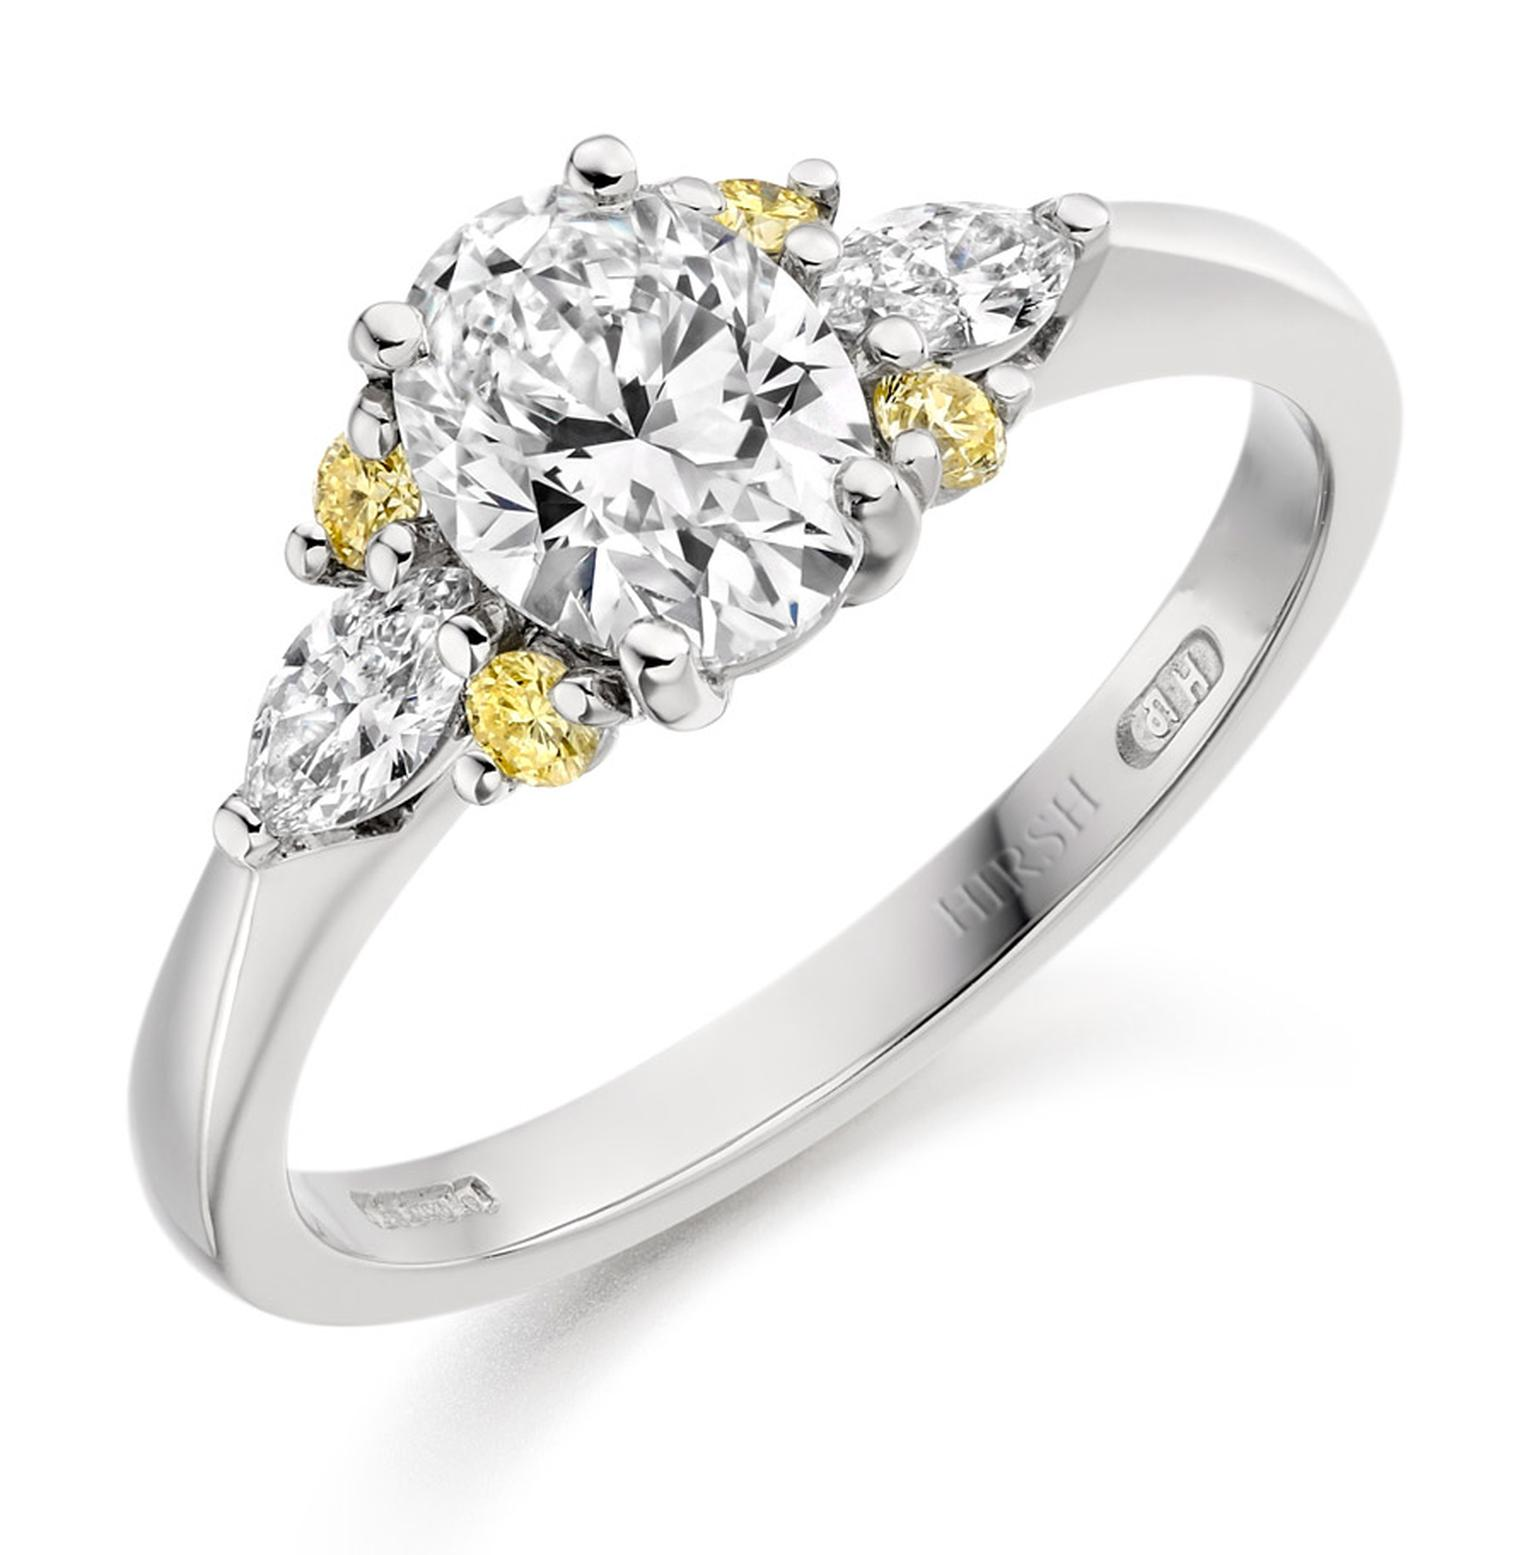 Burlington-Arcade-Papillon-ring-by-Hirsh-in-platinum-with-natural-yellow-diamonds